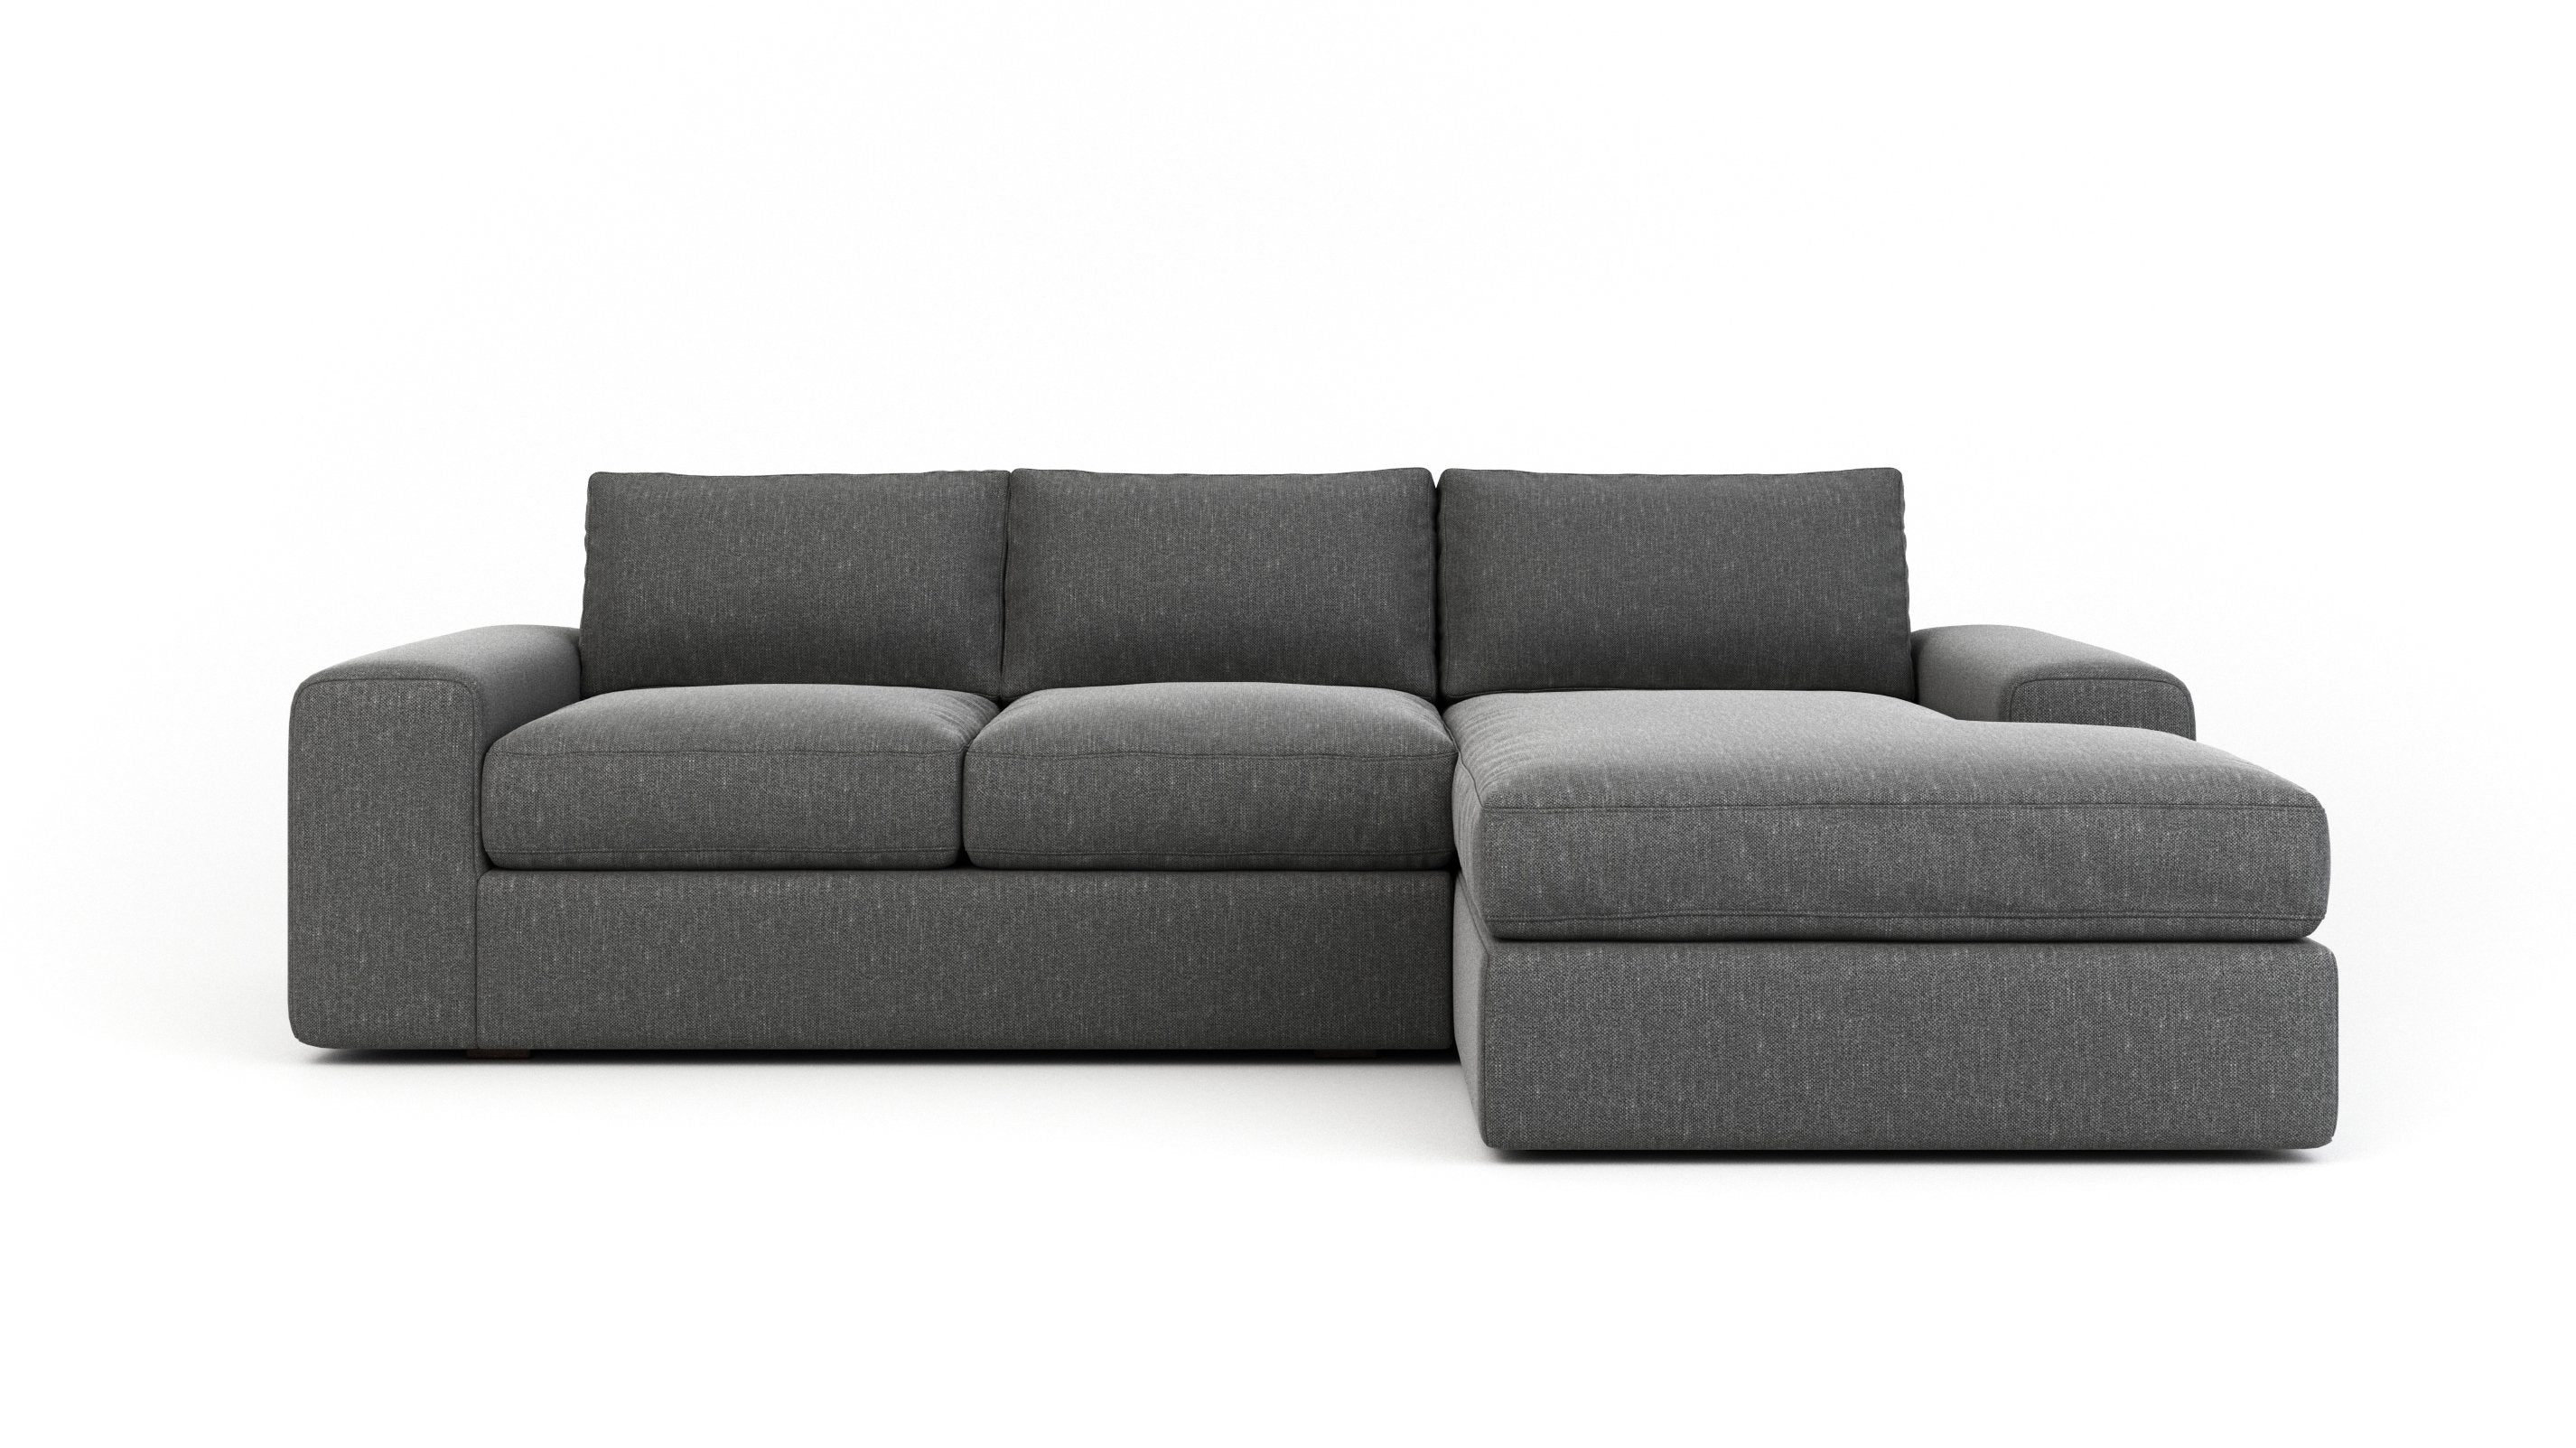 OG Couch Potato Sofa With Chaise